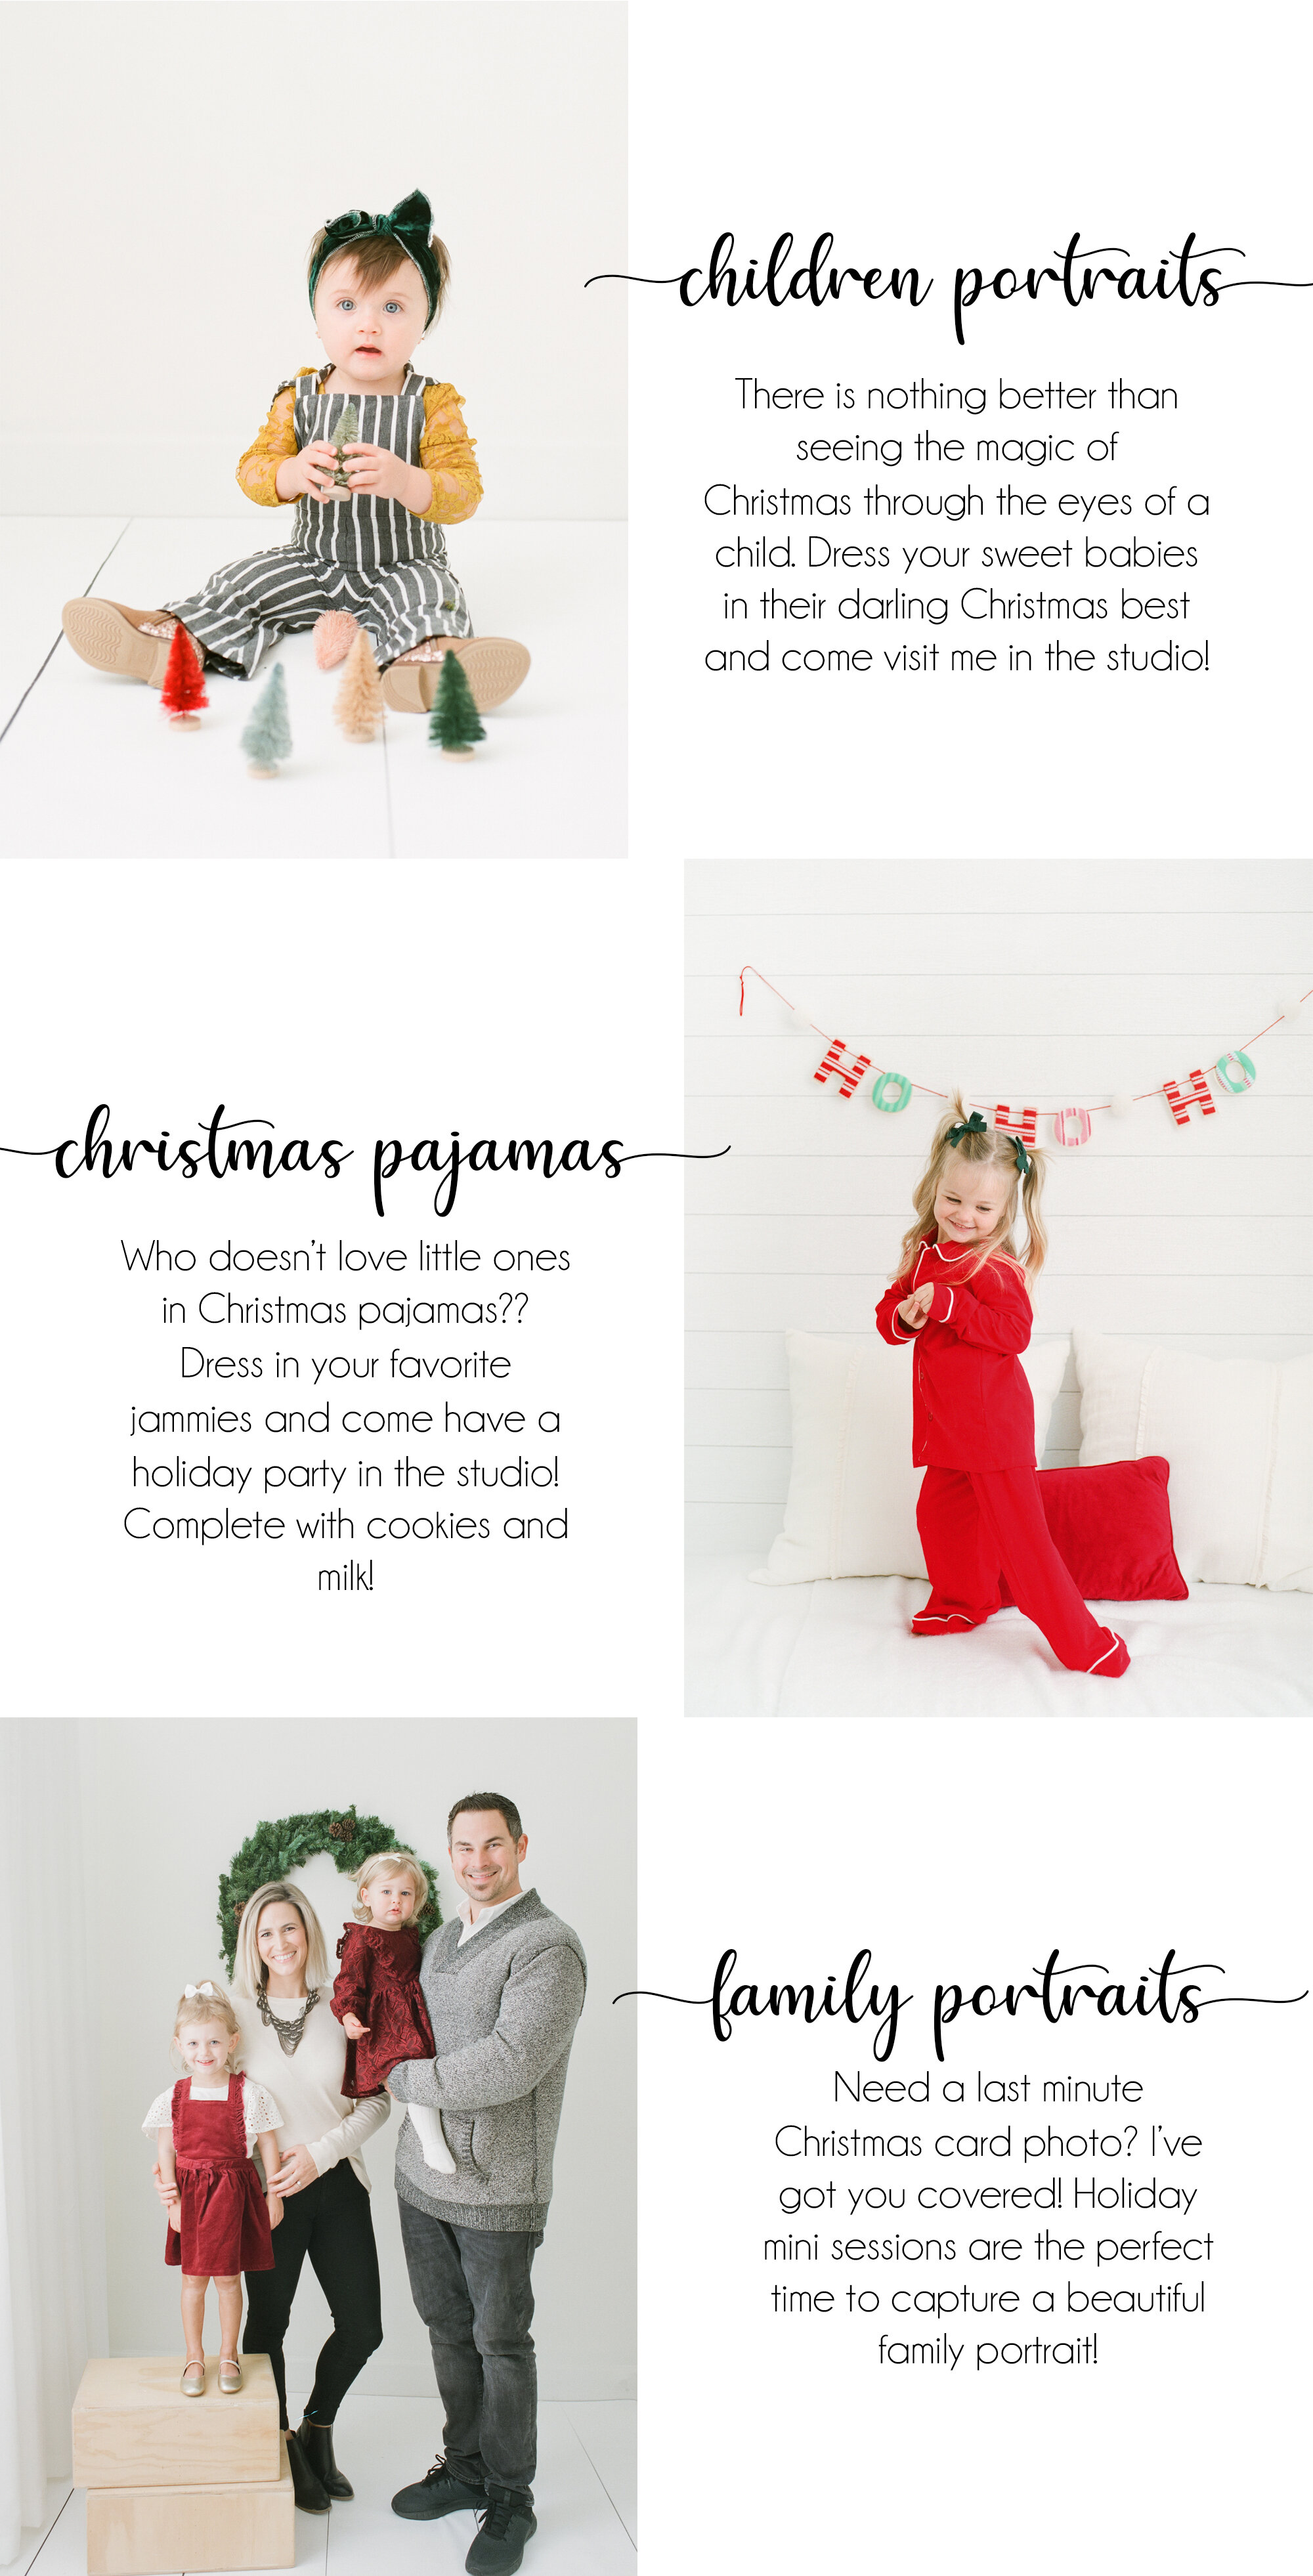 raleigh-holiday-mini-session-christmas-card-photos-fall-family-pictures-wake-forest-photographer-002